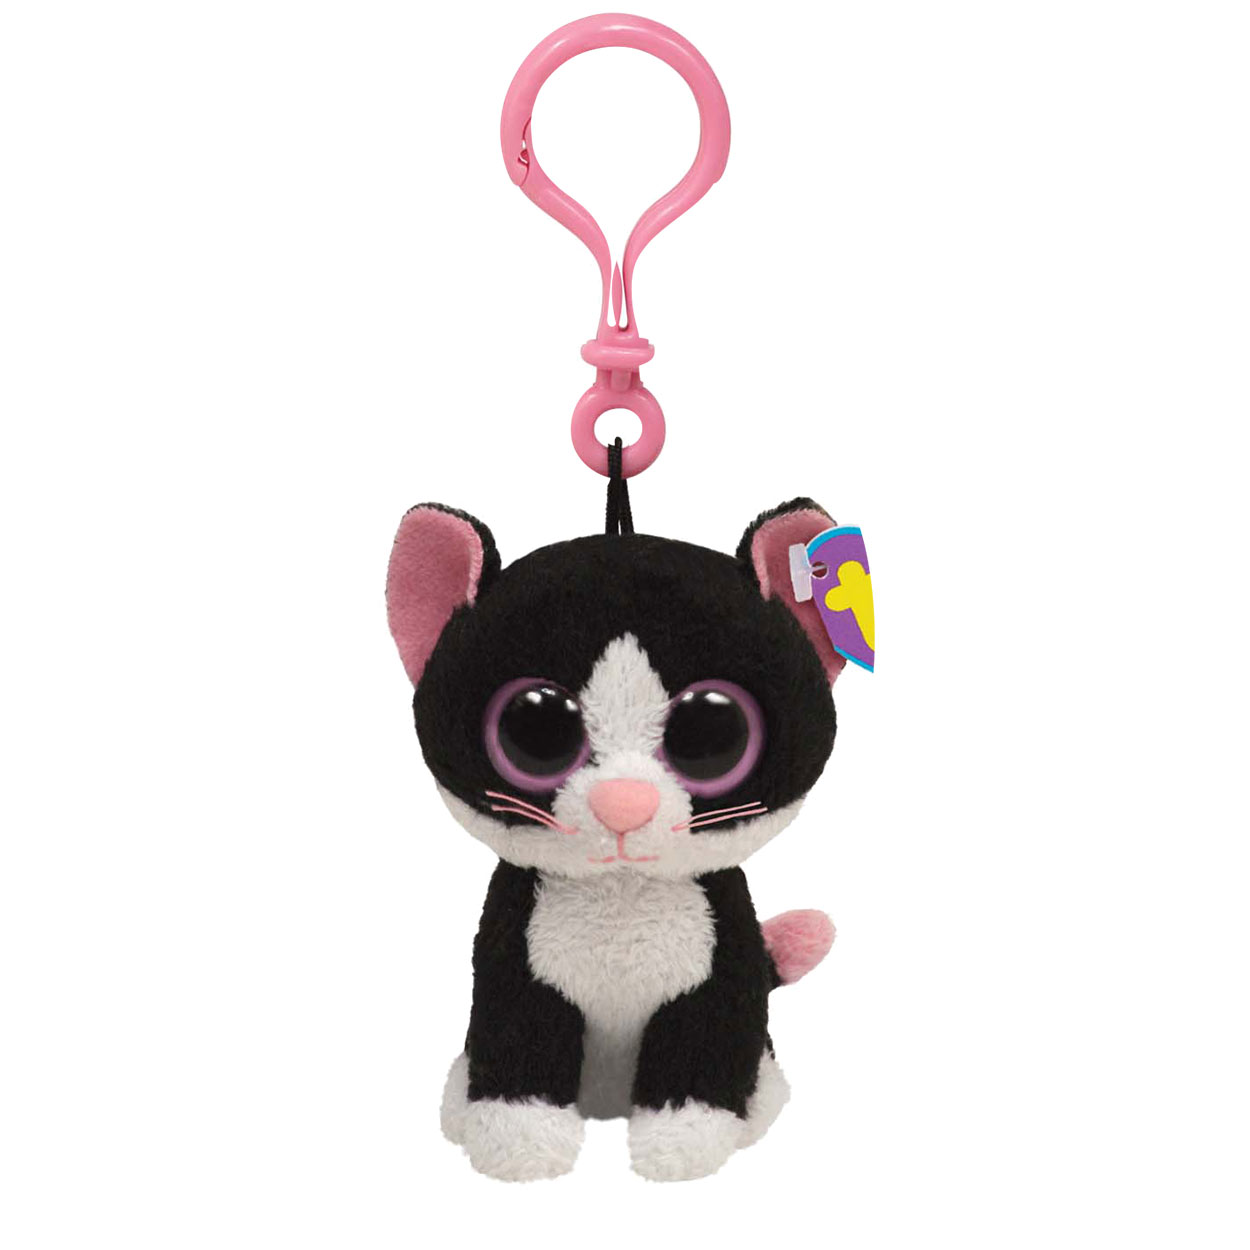 Poes Speelgoed Ty Beanie Boo Sleutelhanger Poes